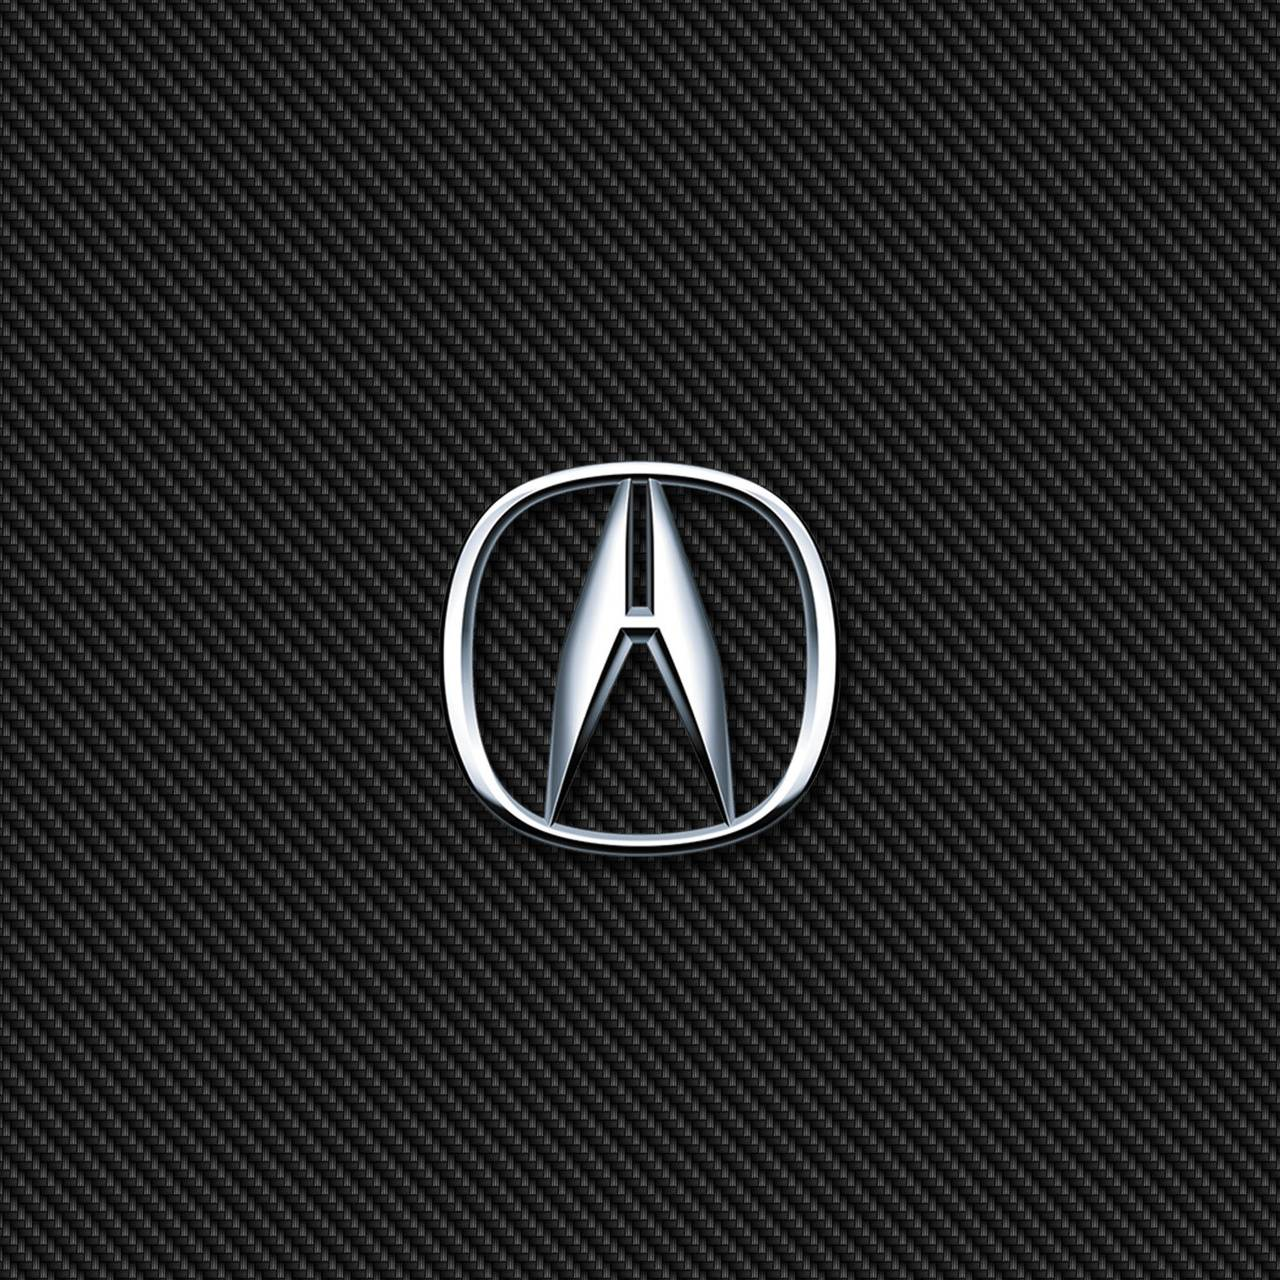 Acura Carbon Wallpaper By Bruceiras